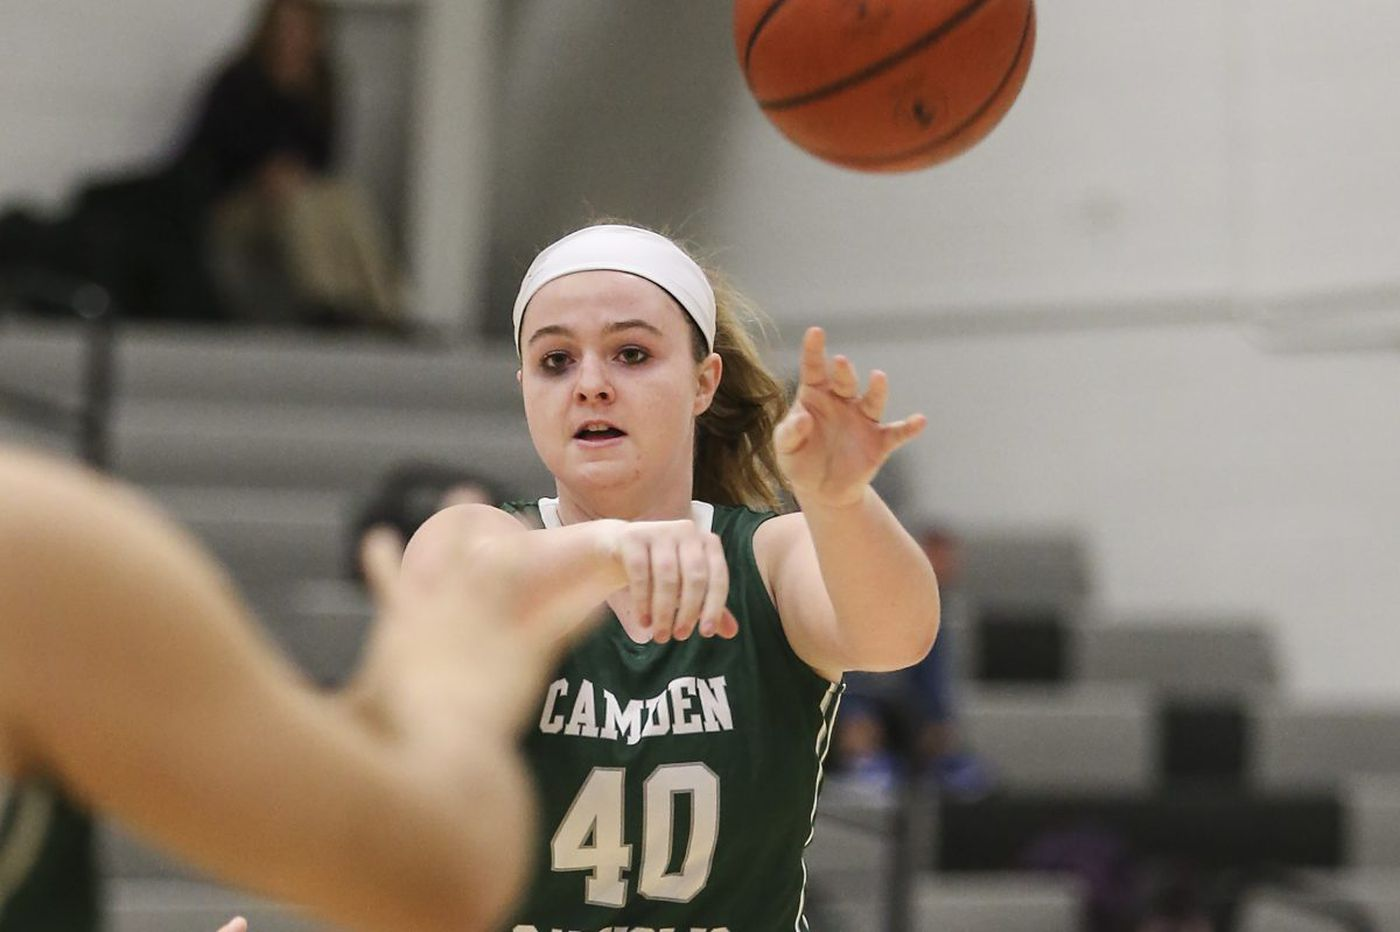 Kate Deutsch is realizing her hoops potential at Camden Catholic